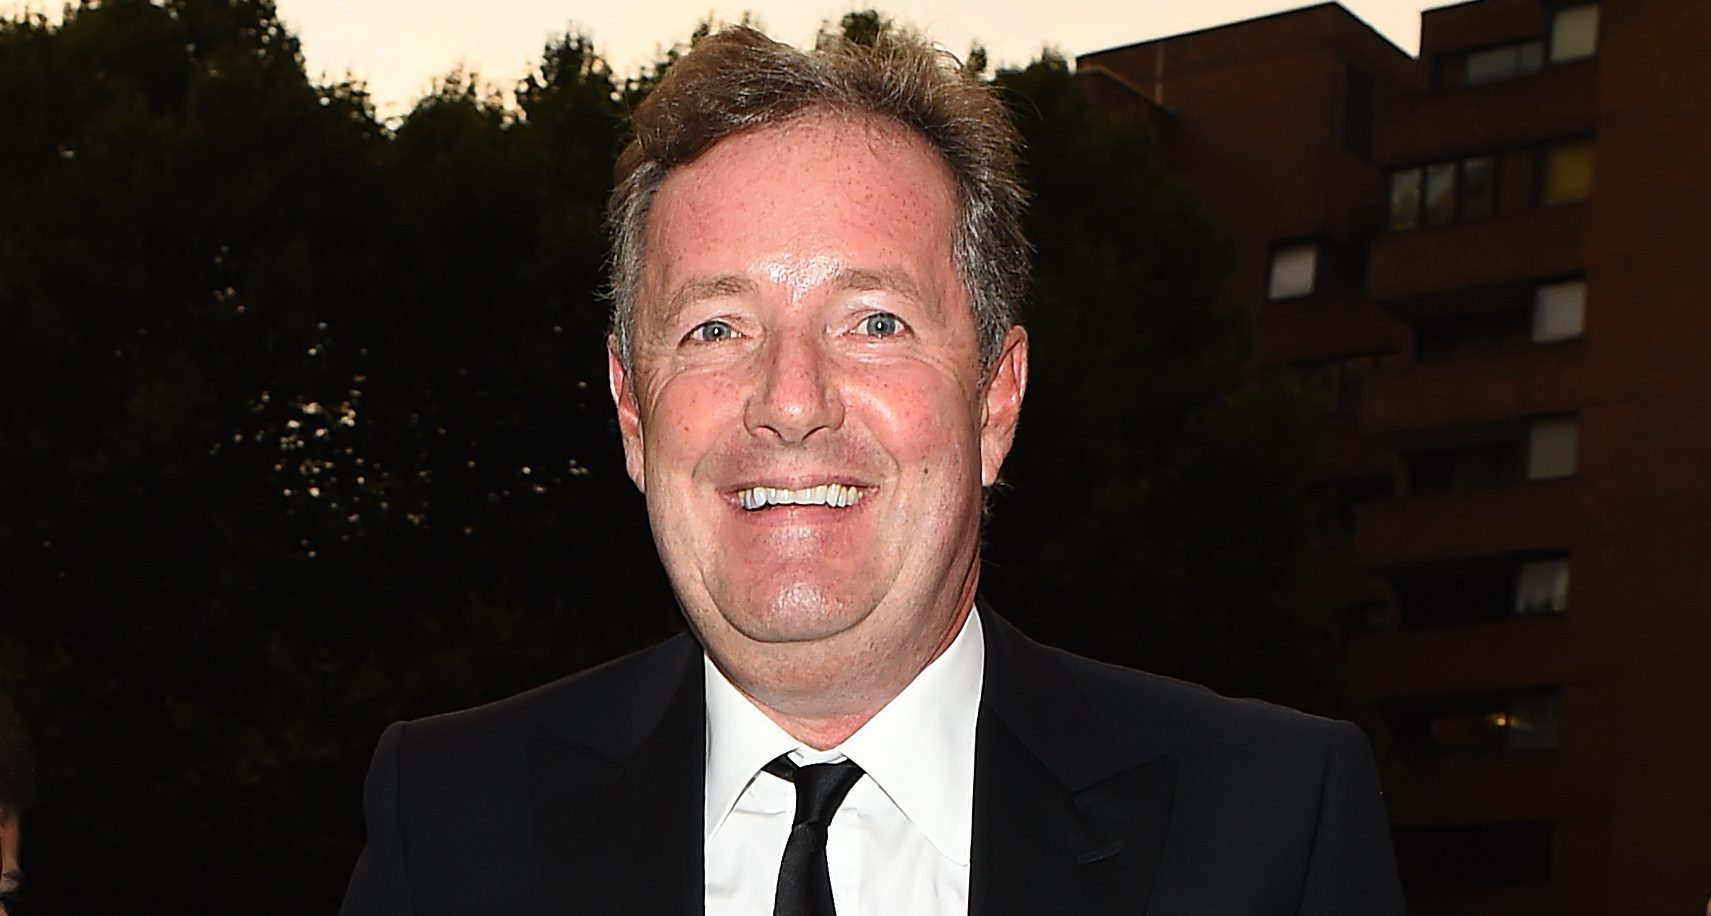 NTAs: Piers Morgan launches campaign to bring back former host Dermot O'Leary